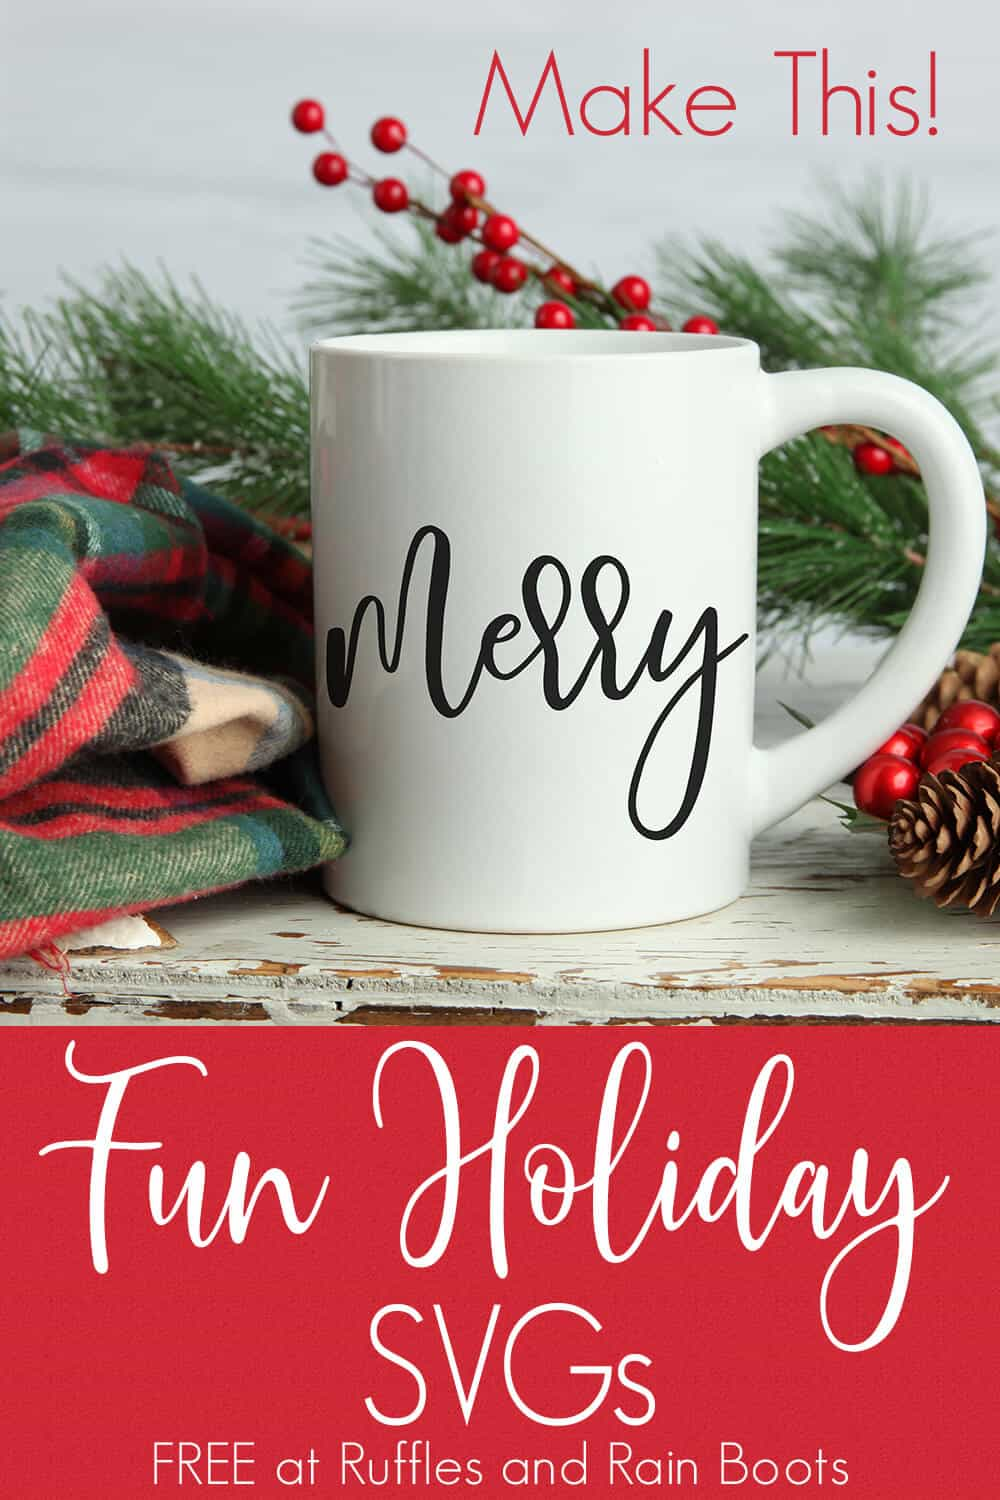 Merry free Christmas SVG on Coffee mug with text which reads fun holiday SVGs